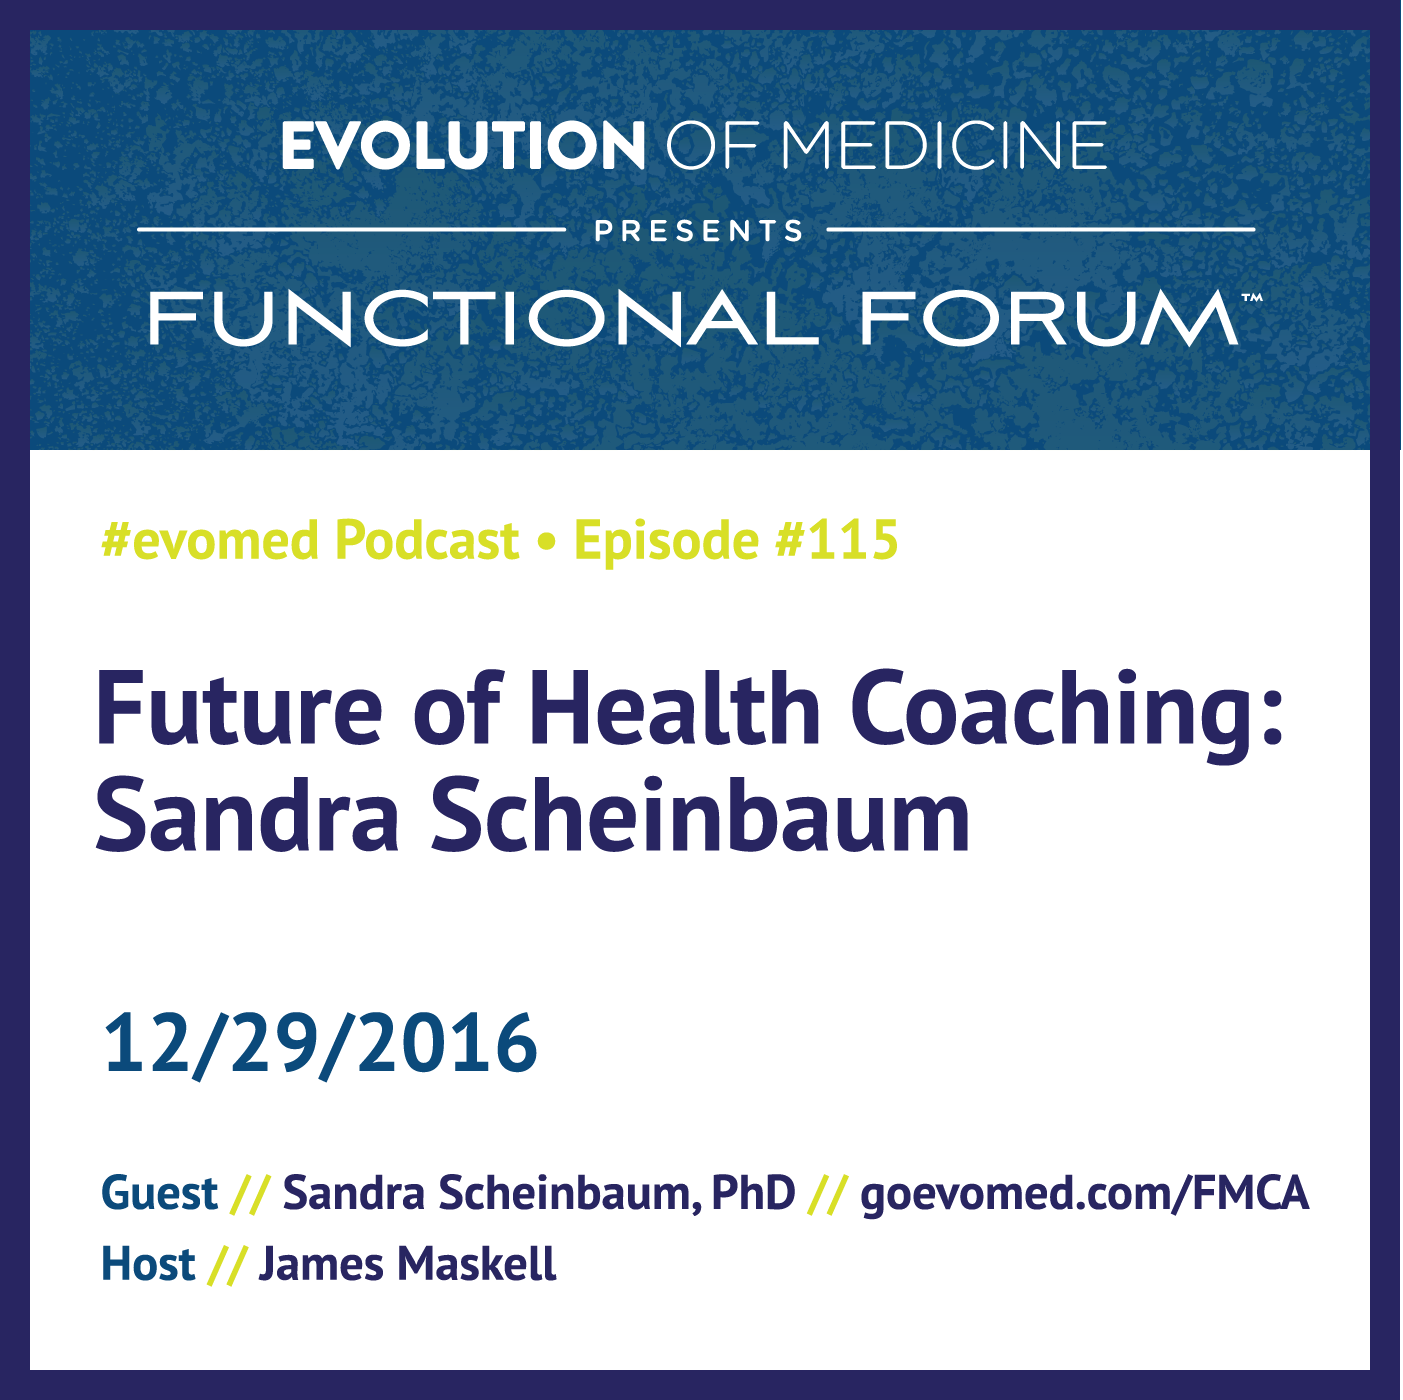 Future of Health Coaching: Sandra Scheinbaum